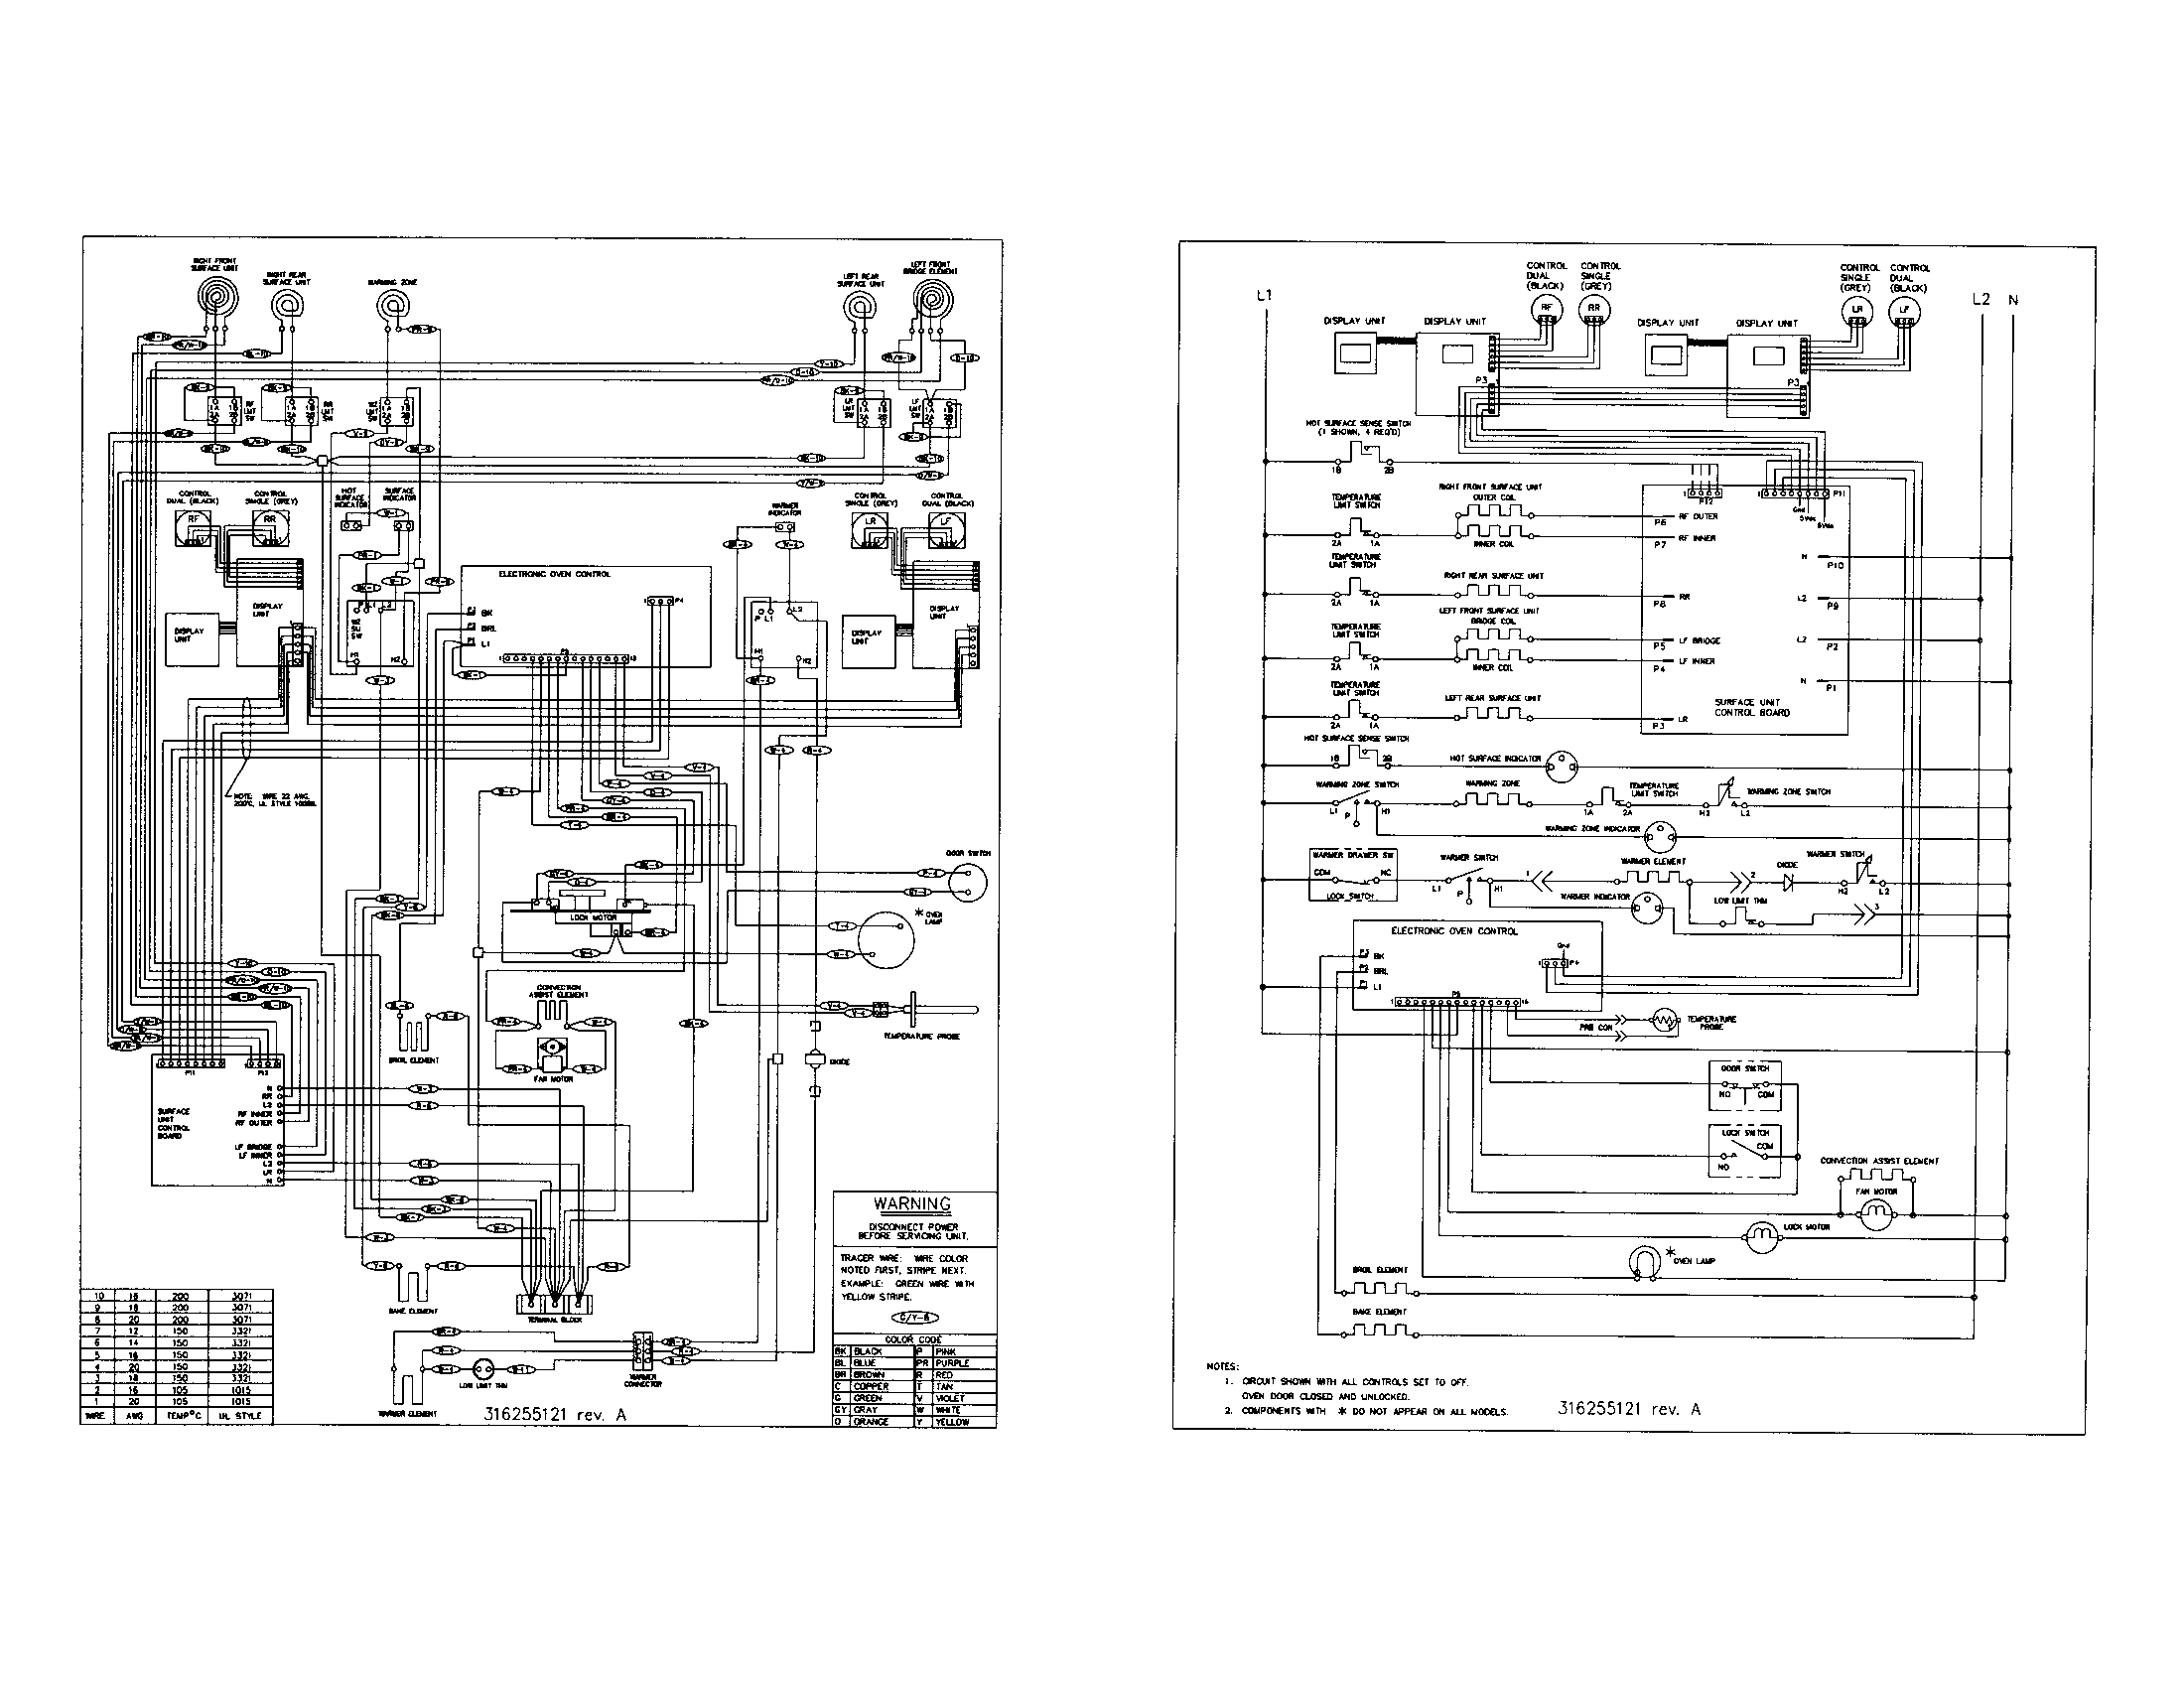 Ge Range Schematic Diagram Books Of Wiring Circuit Board For Oven Control Get Free Image